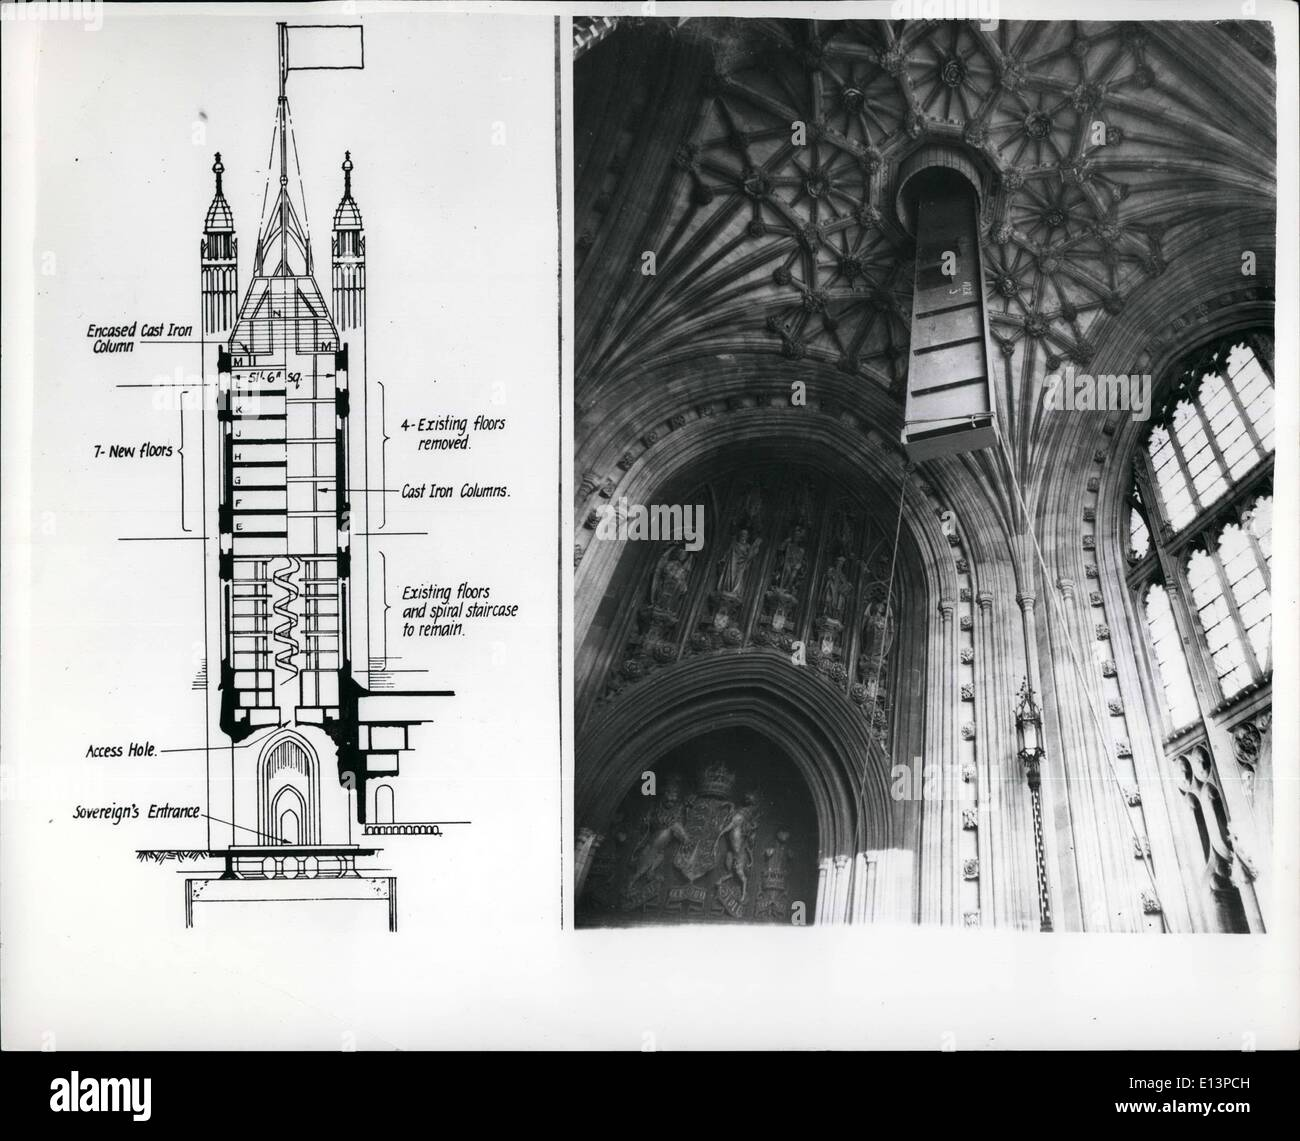 Mar. 22, 2012 - Major Structurel Alterations Inside Te Victoria Tower Seven New Floors For Storage Space: A ramarkable and intricate structiural alteration is now being carried out inside the famous Victoria Tower Of the House of Parliament. The Tower which is 360 feet high - was built over 100 years ago by Sir Charles Barry and is one of the largest square manor towers in the world -- and it has been transformed internally to provide 17,0000 square feet of modern storage accommodation for the unique accumulation of Parliamentary Records of one and a half million documents and books including - Stock Image